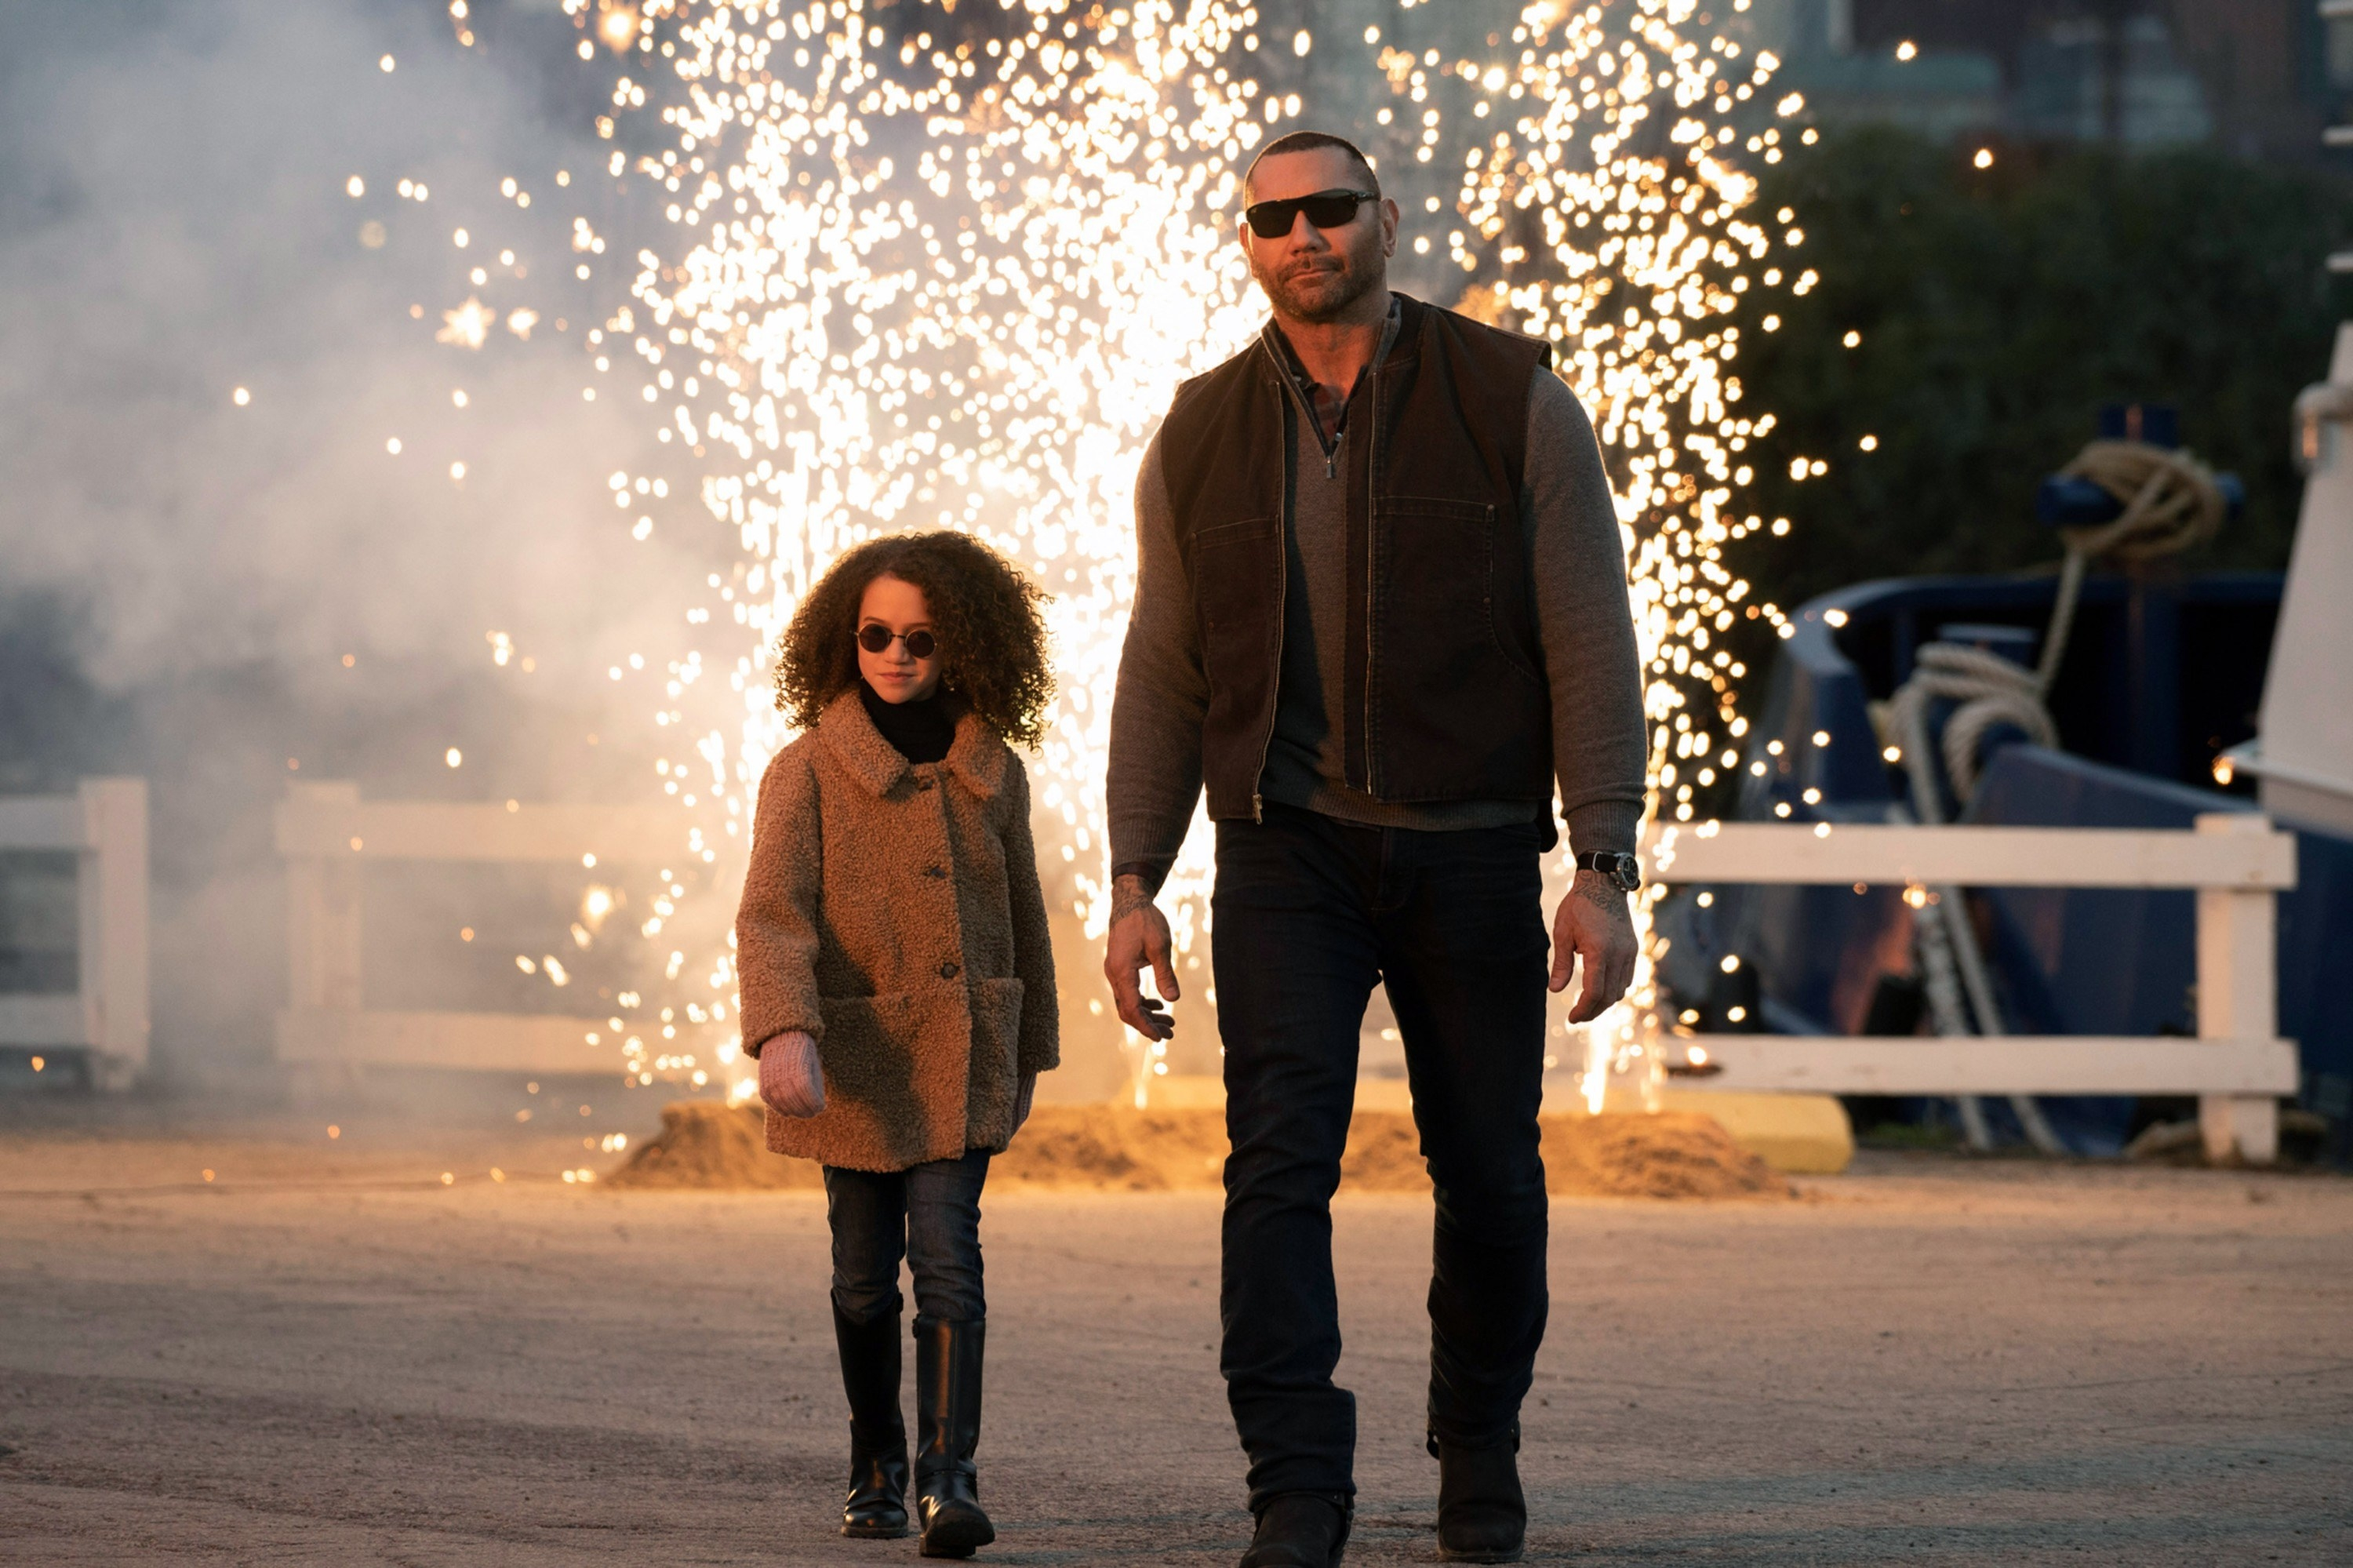 A girl and Dave Bautista walk away from an explosion with sunglasses on.